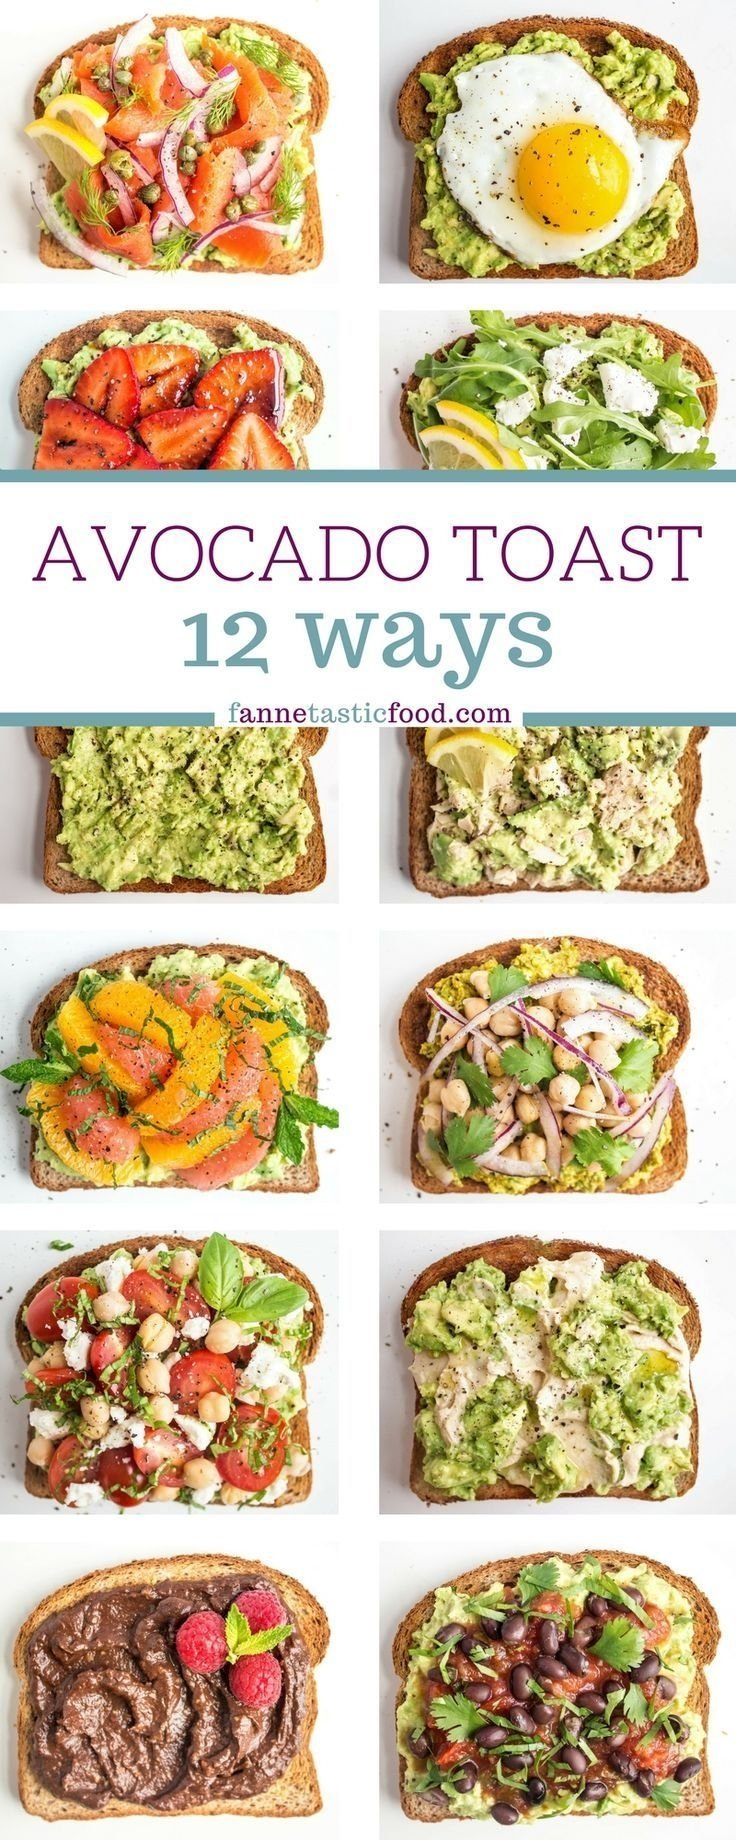 10 Attractive Healthy Breakfast And Lunch Ideas avocado toast recipes 2020